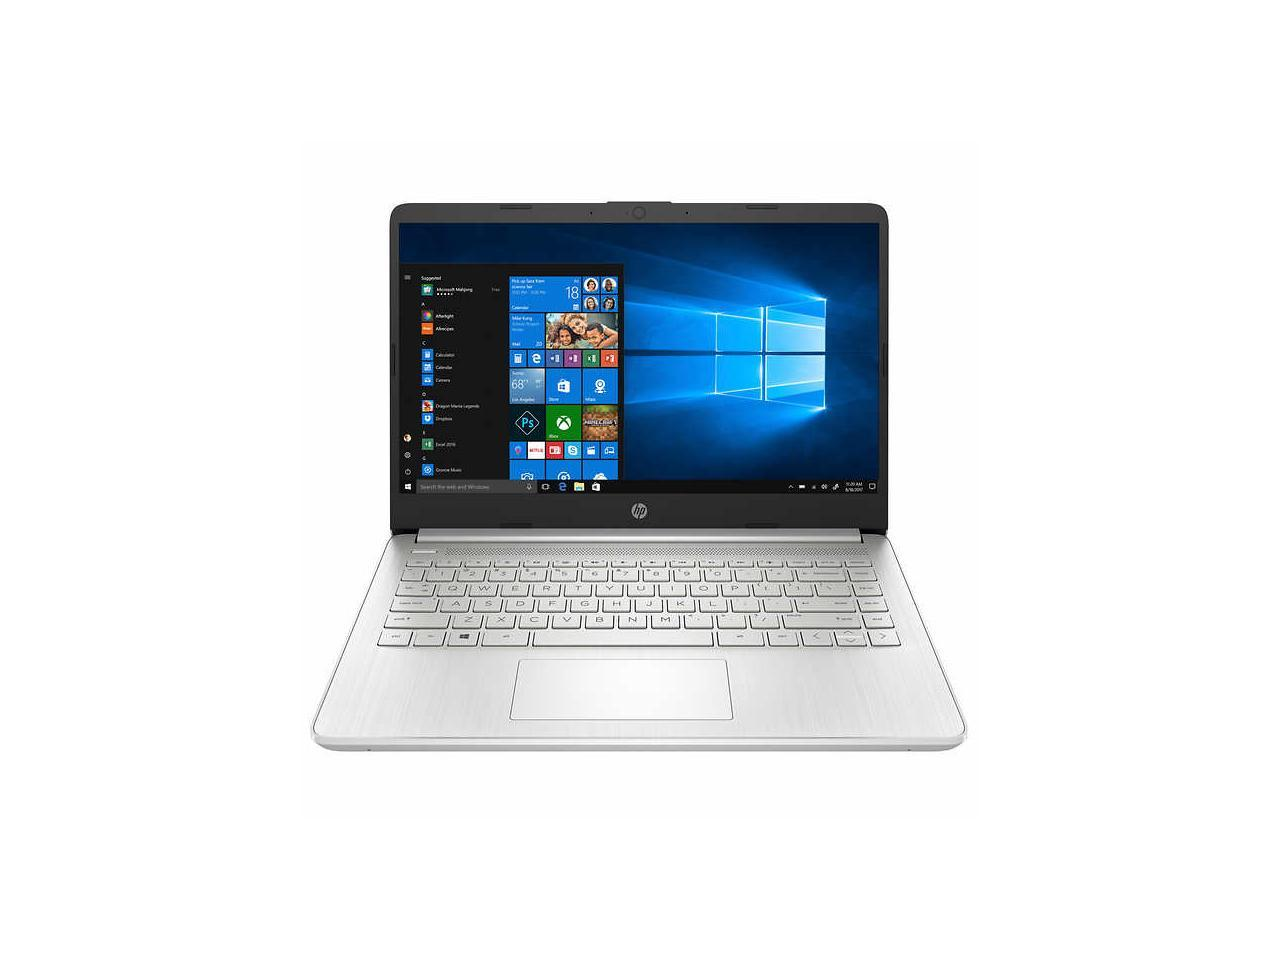 Hp 14 Laptop 10th Gen Intel Core I7 1065g7 1080p 14 Dq1055cl Notebook Pc Laptop 12gb Memory 512gb Ssd Newegg Com